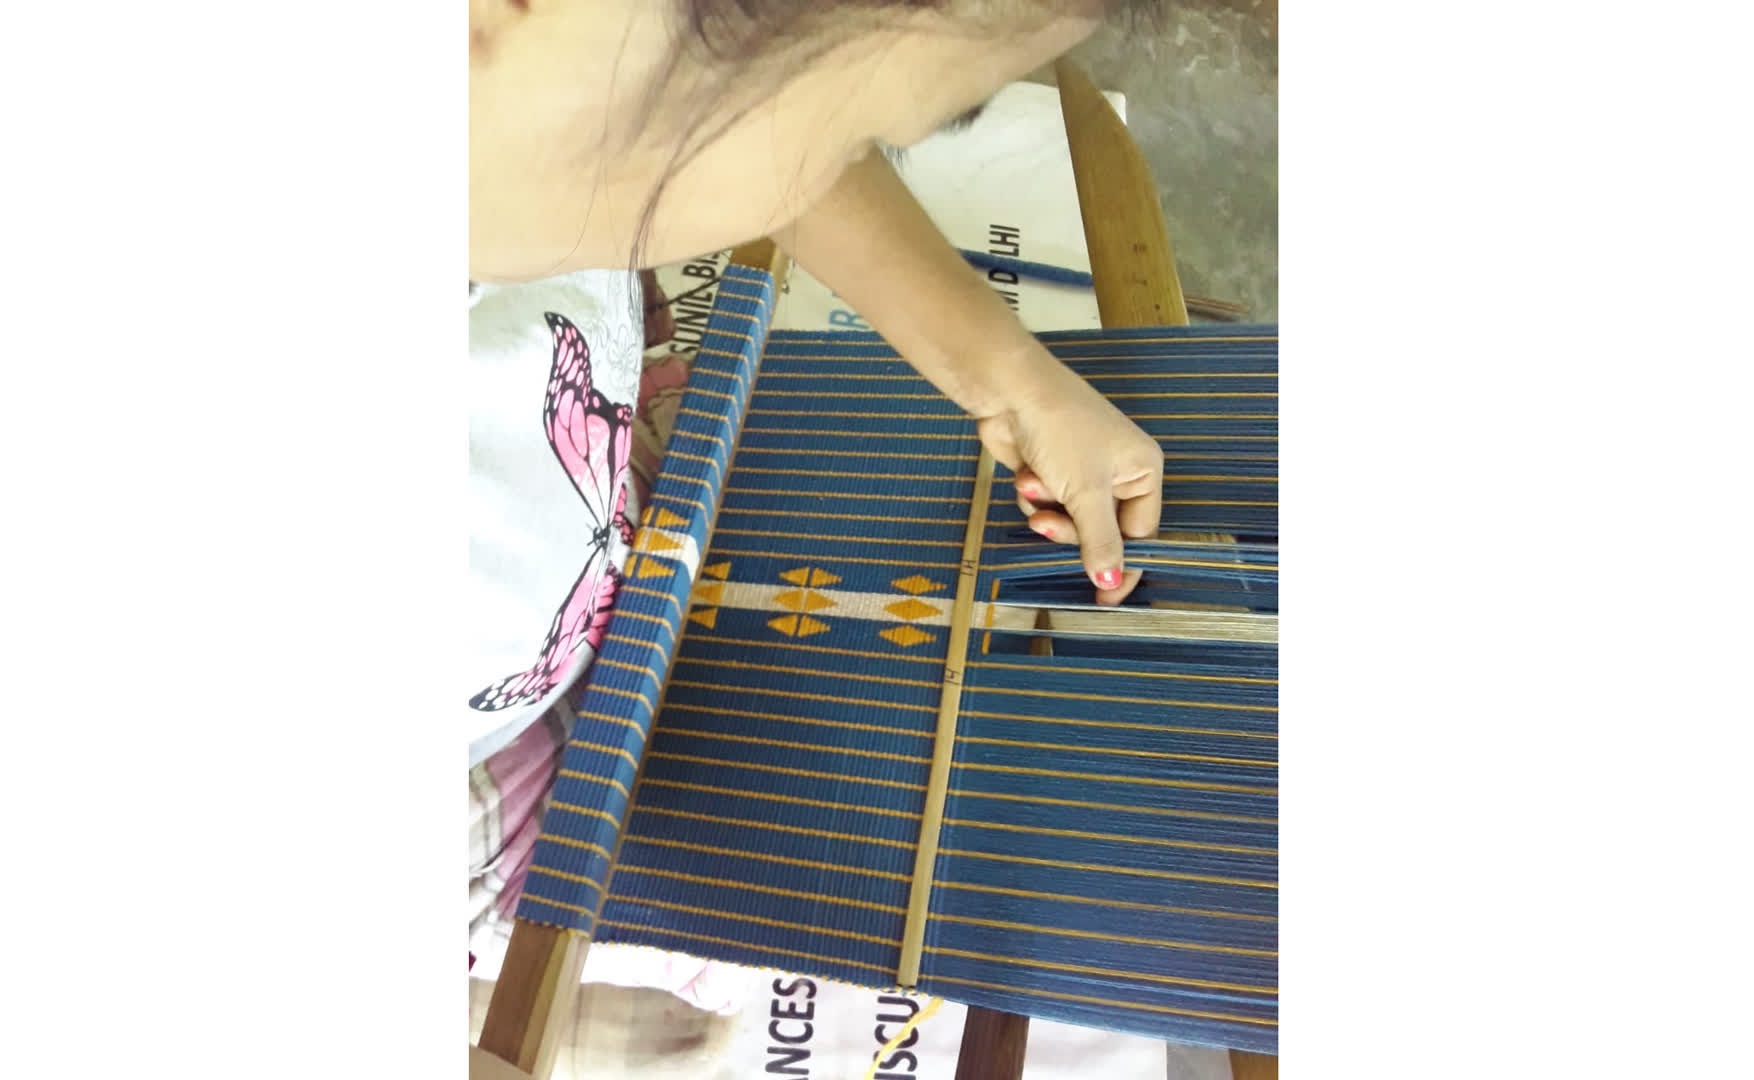 Picking up the warp yarn as per the motifs and inserting the weft